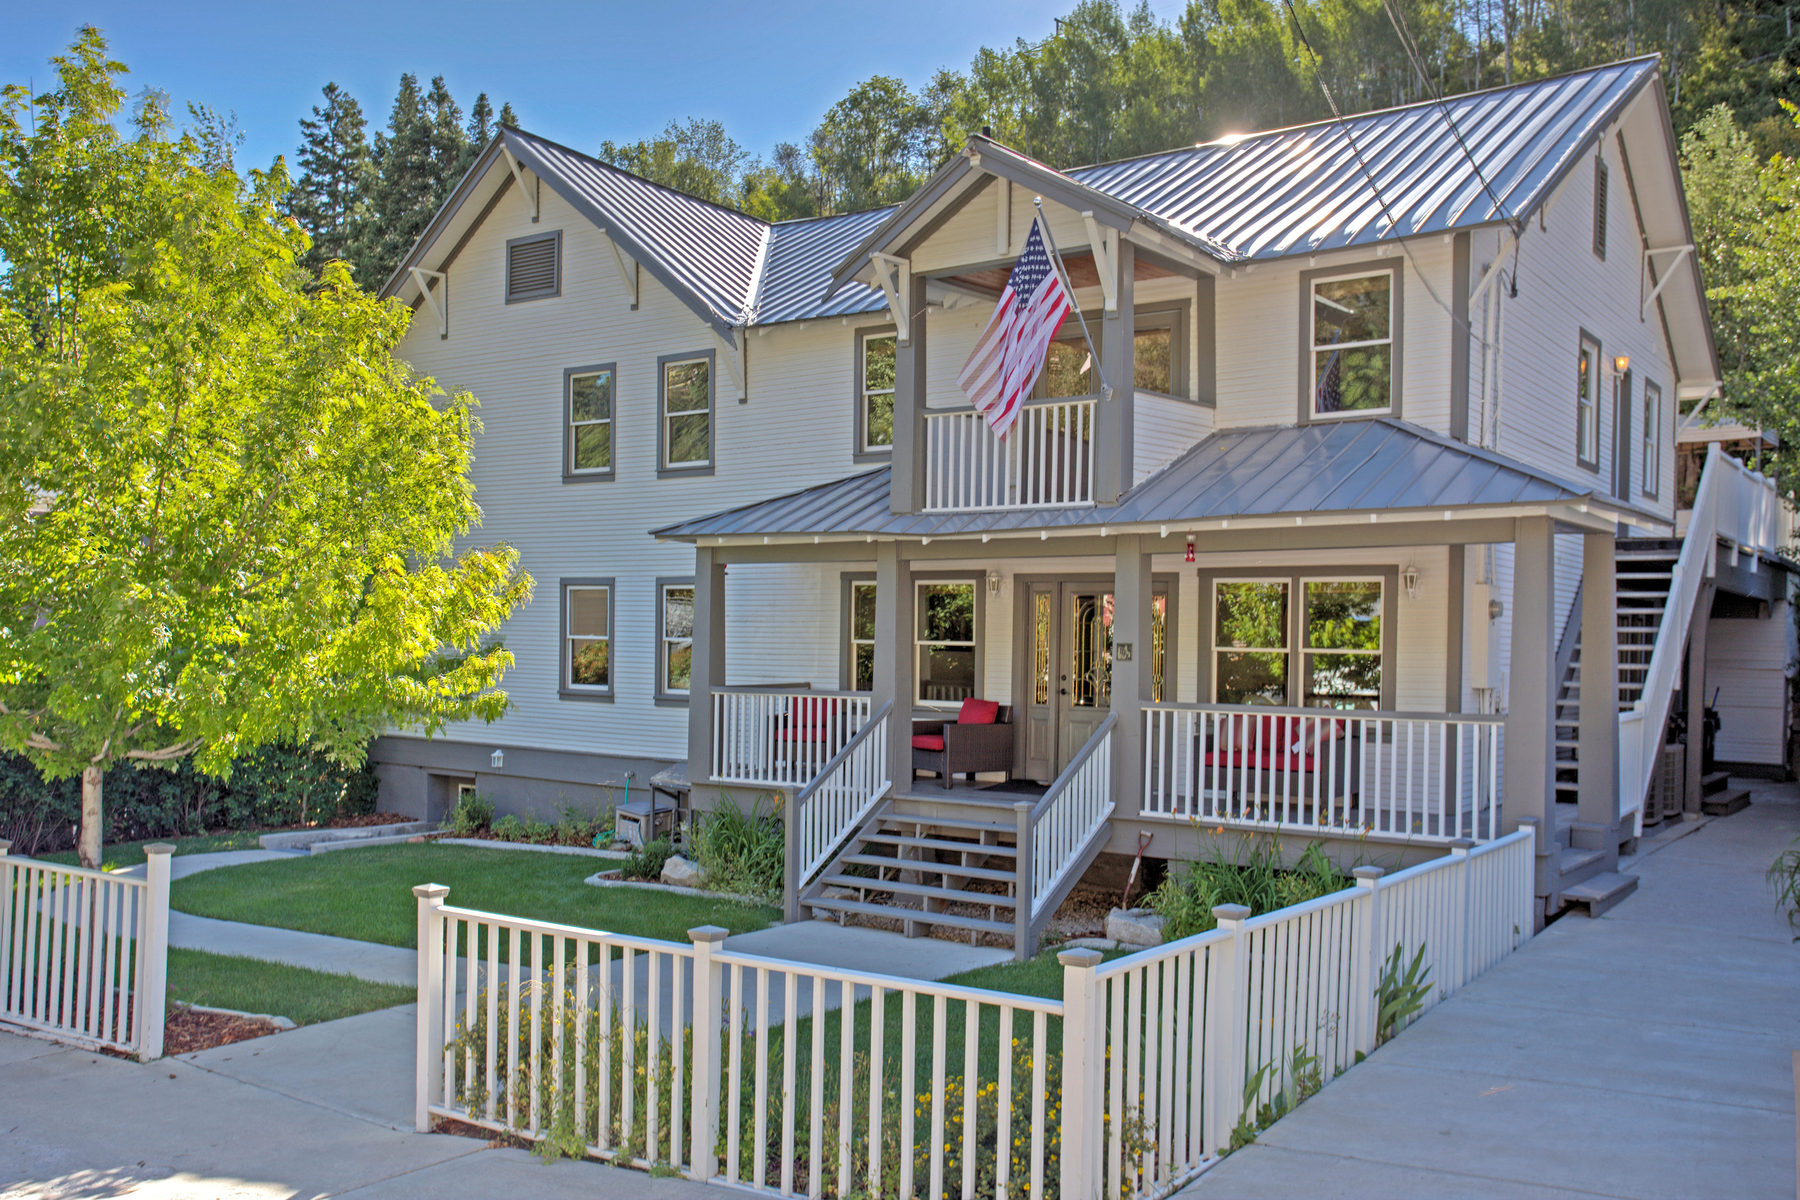 Villa per Vendita alle ore Bea's Canyon Lodge on The Market For The First Time Since 1955! 167 Daly Ave Park City, Utah 84060 Stati Uniti